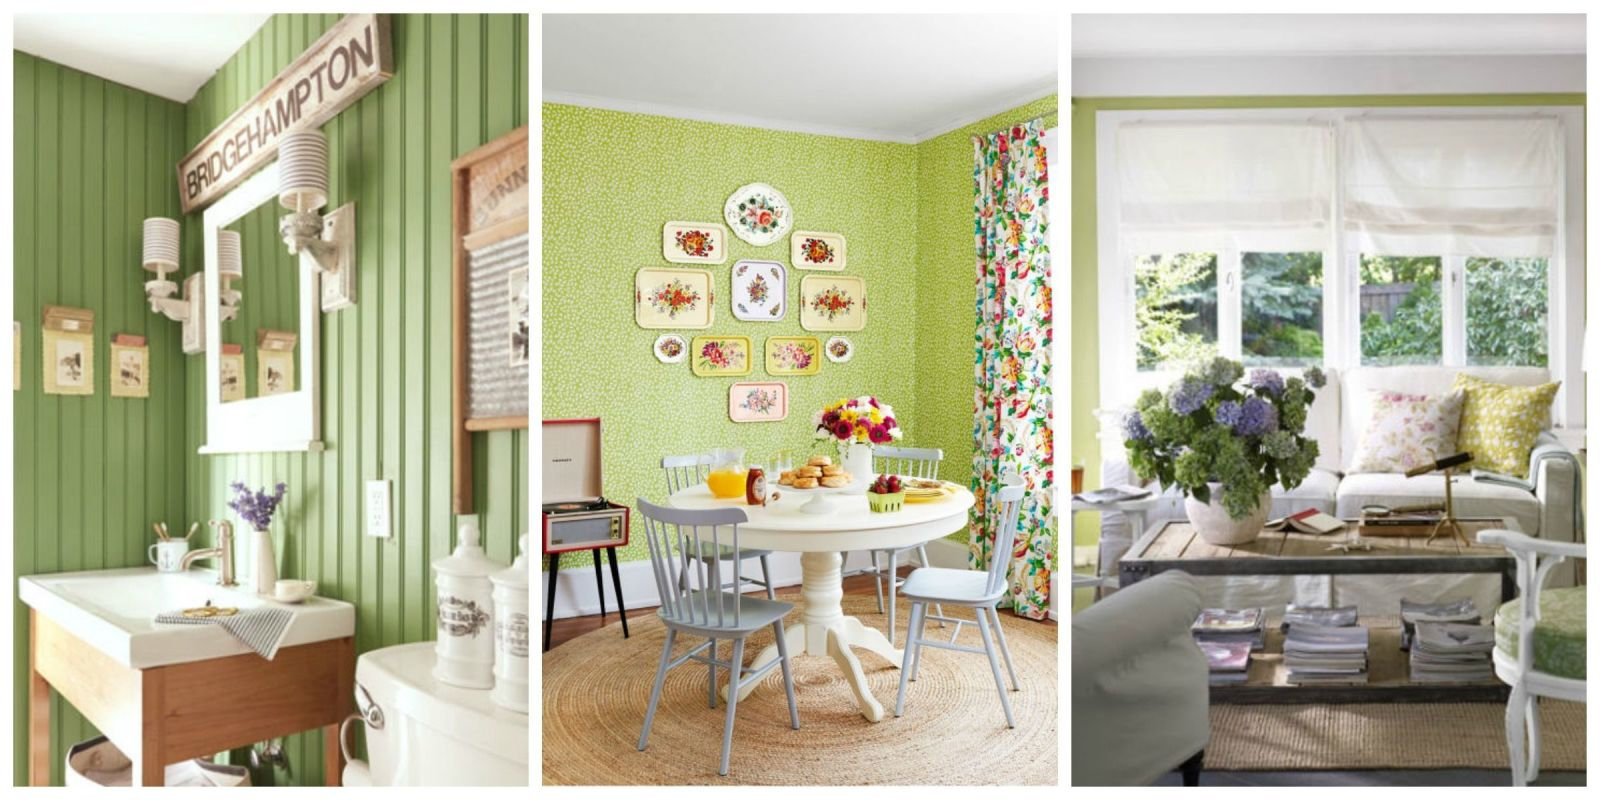 Home Design Ideas Colours: Ideas For Green Rooms And Home Decor